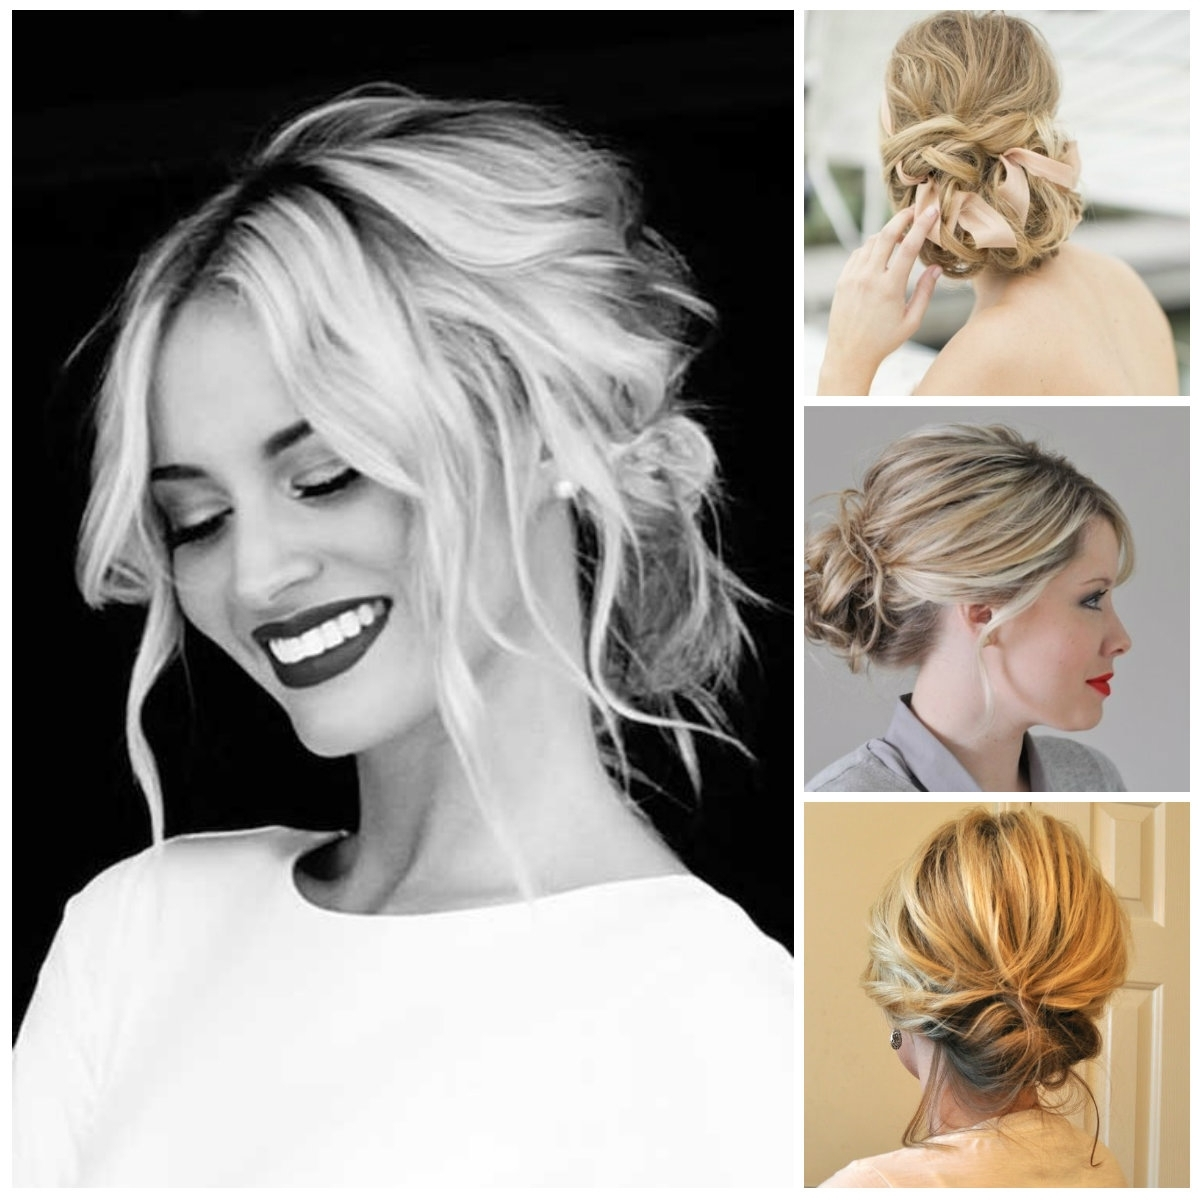 Favorite Wedding Hairstyles For Medium Length Fine Hair Within Shaggy Hairstyles For Medium Length Hair – Hairstyle For Women & Man (View 7 of 15)